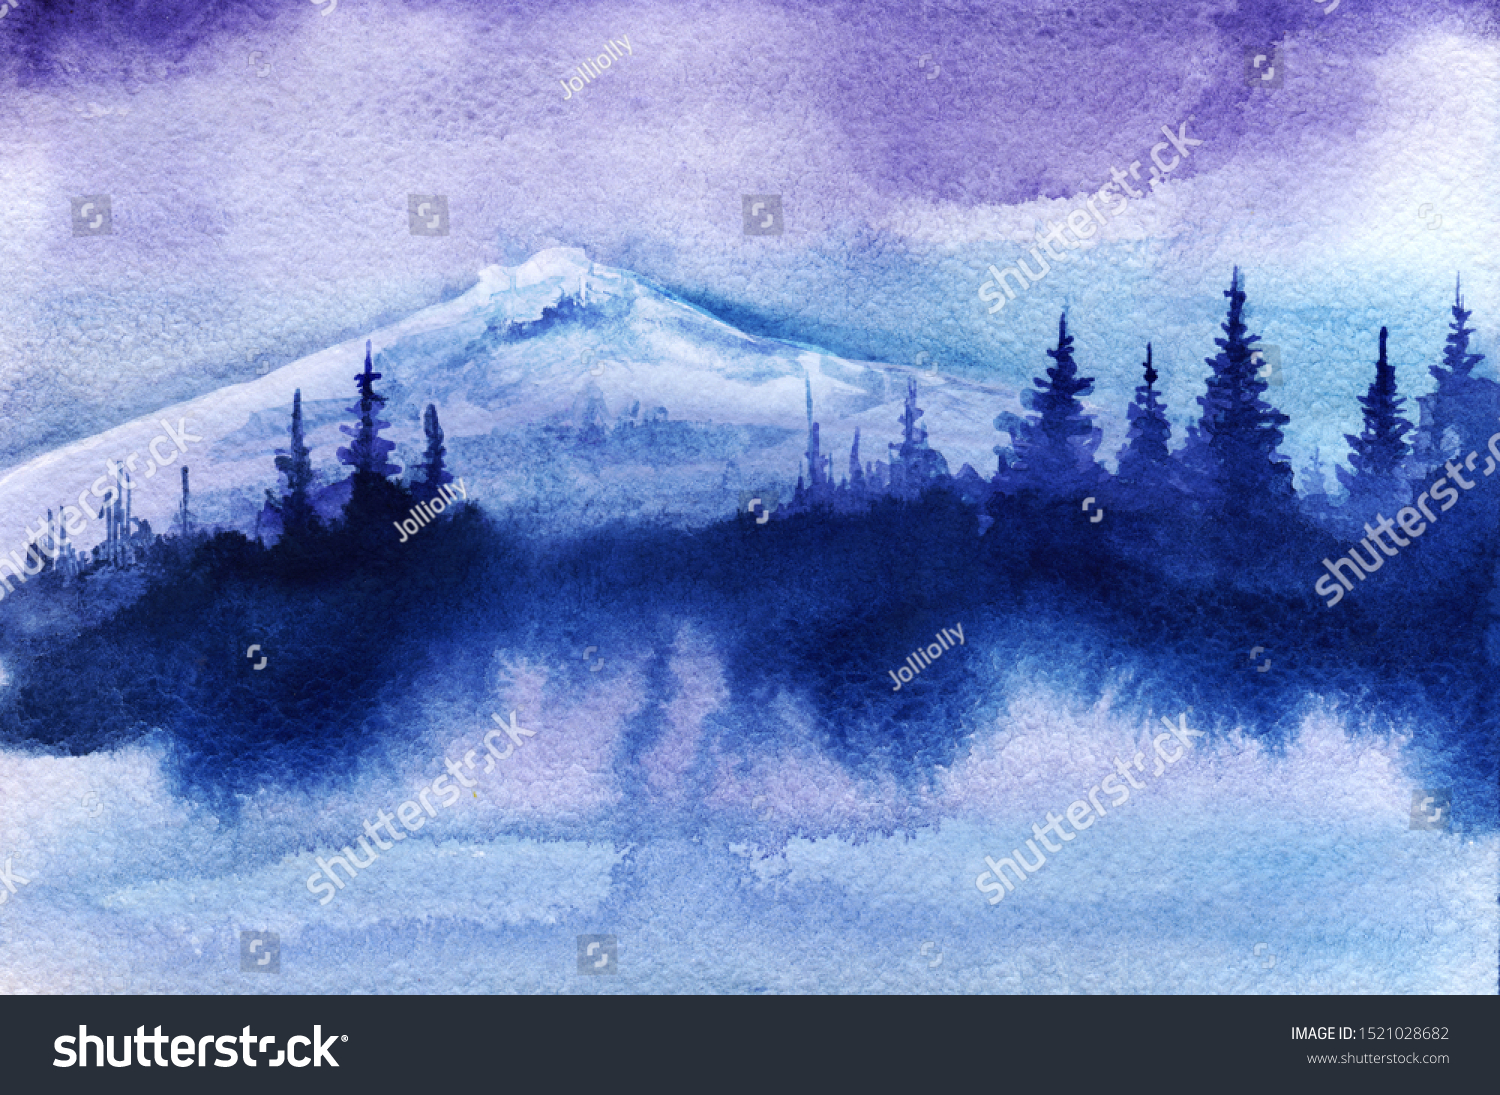 Abstract Watercolor Landscape Silhouette White Snowy Stock Photo Edit Now 1521028682